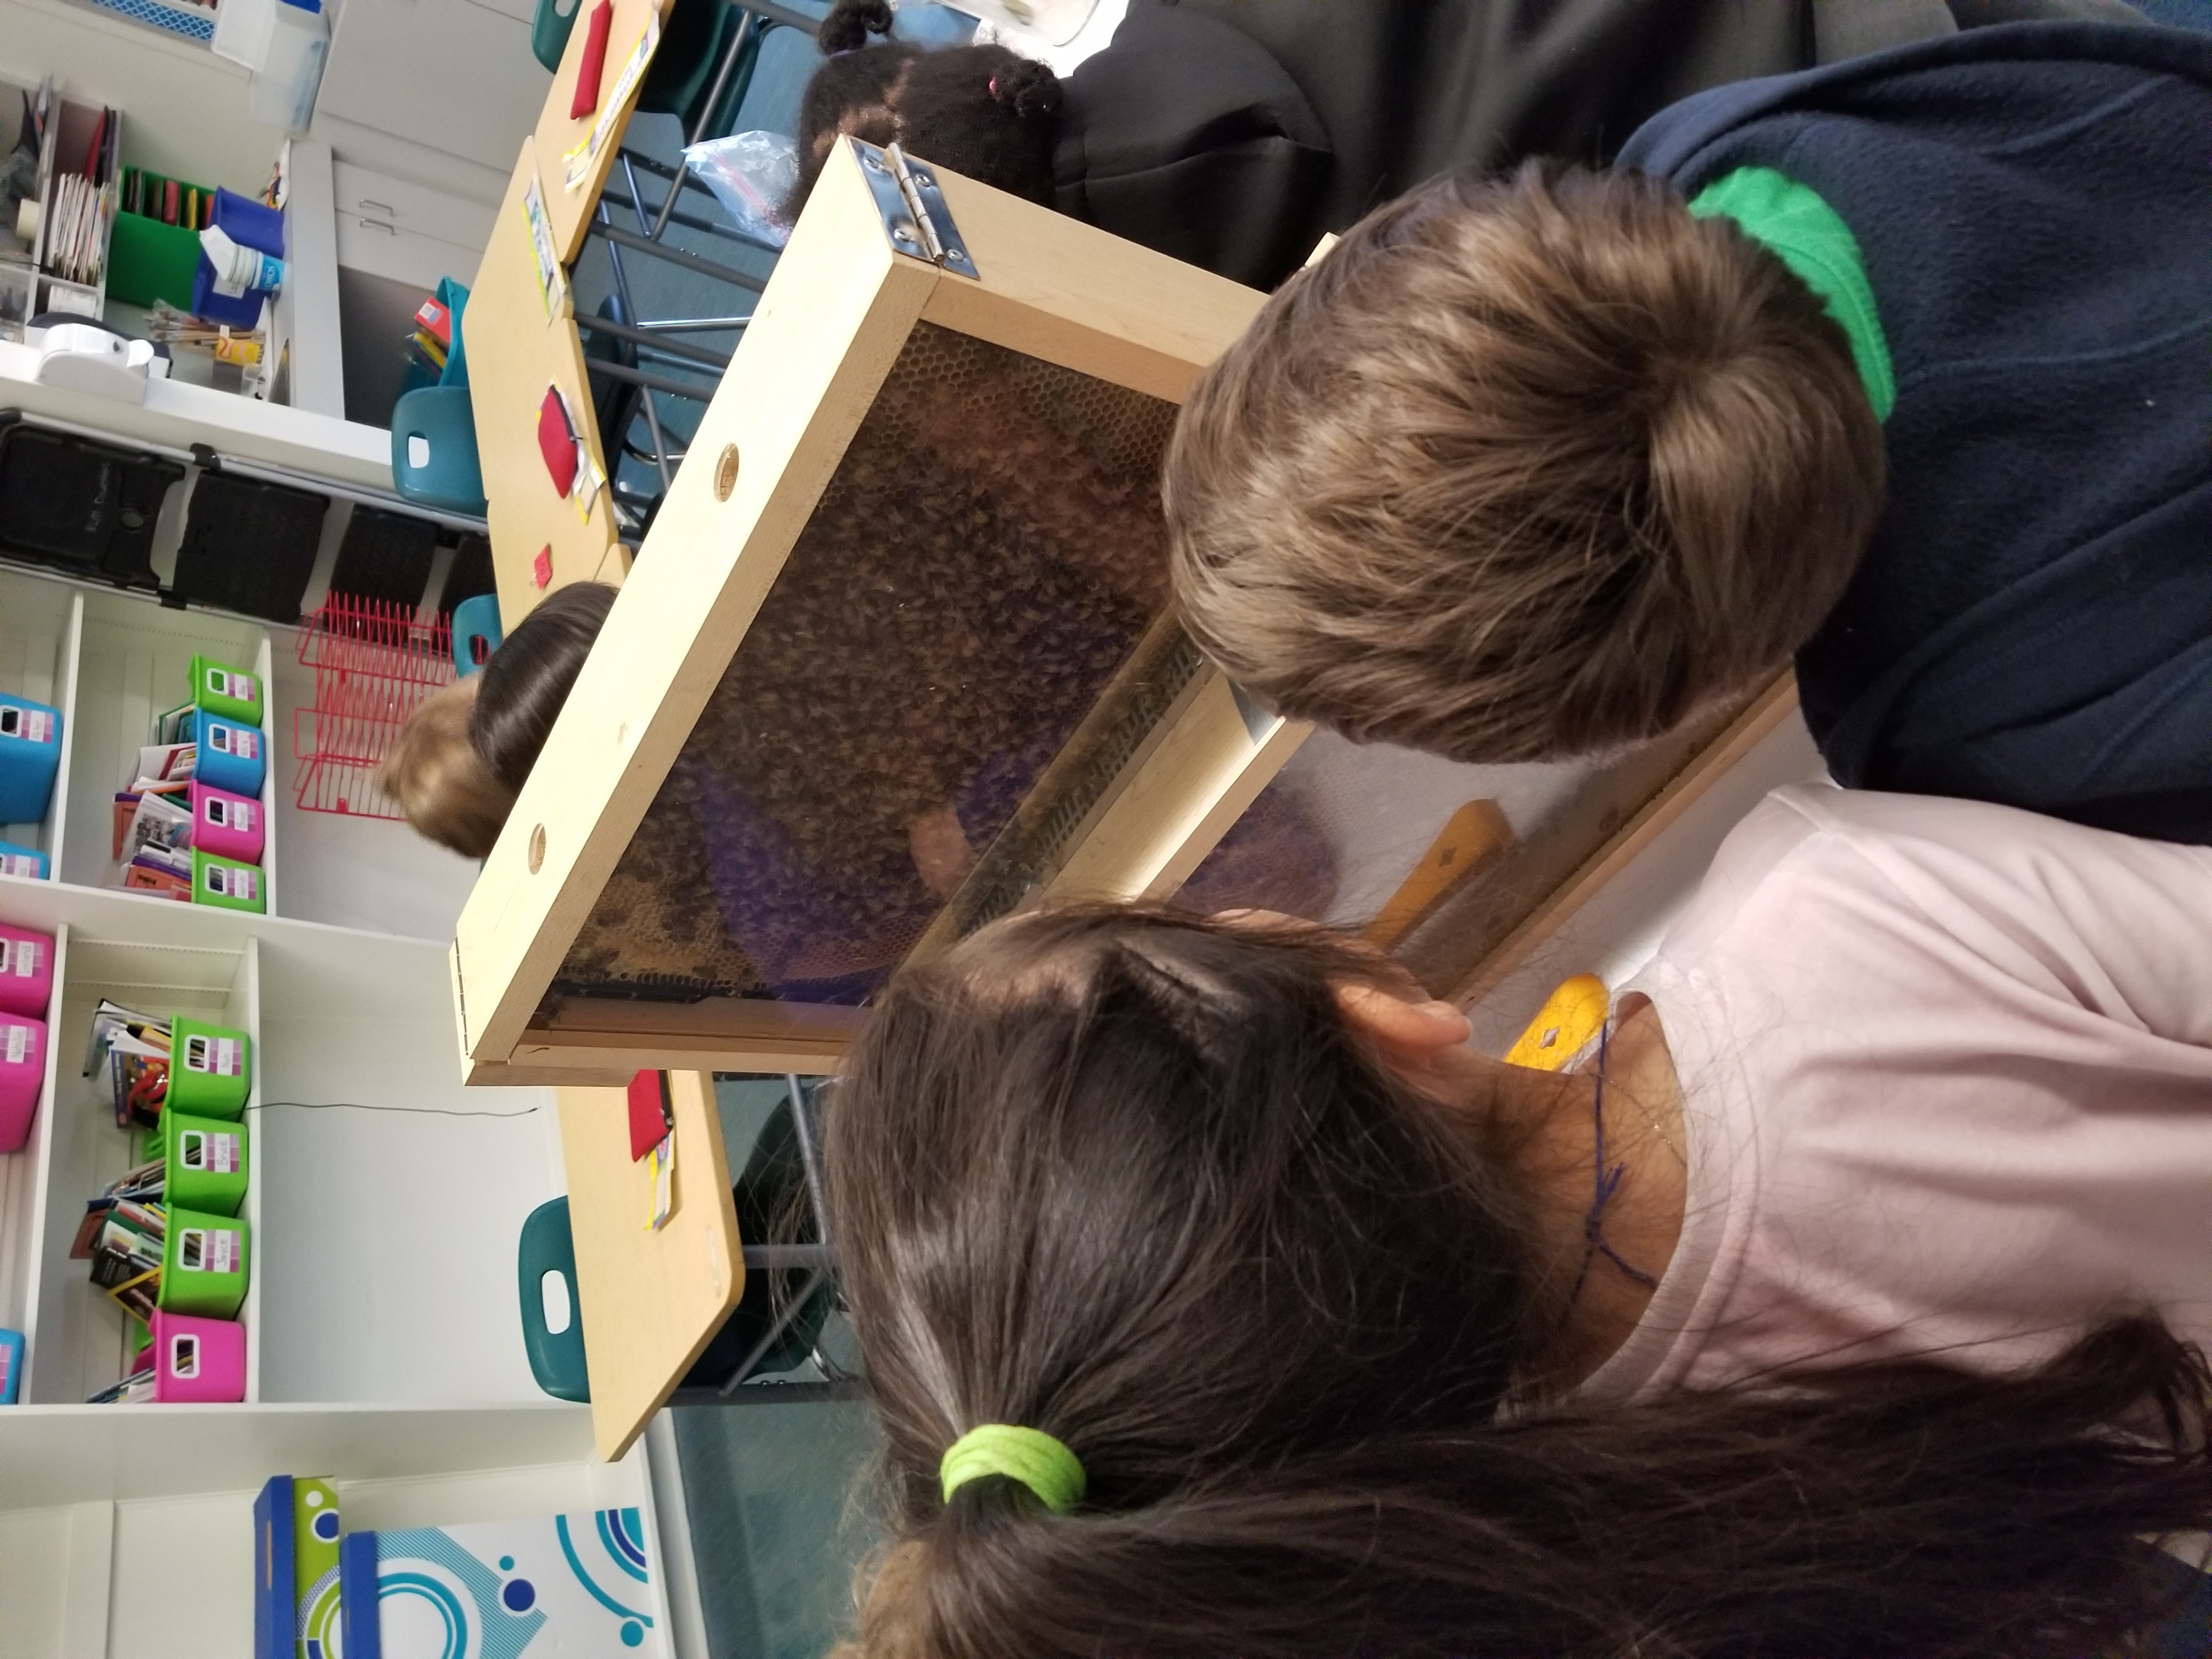 Our Observation Hive